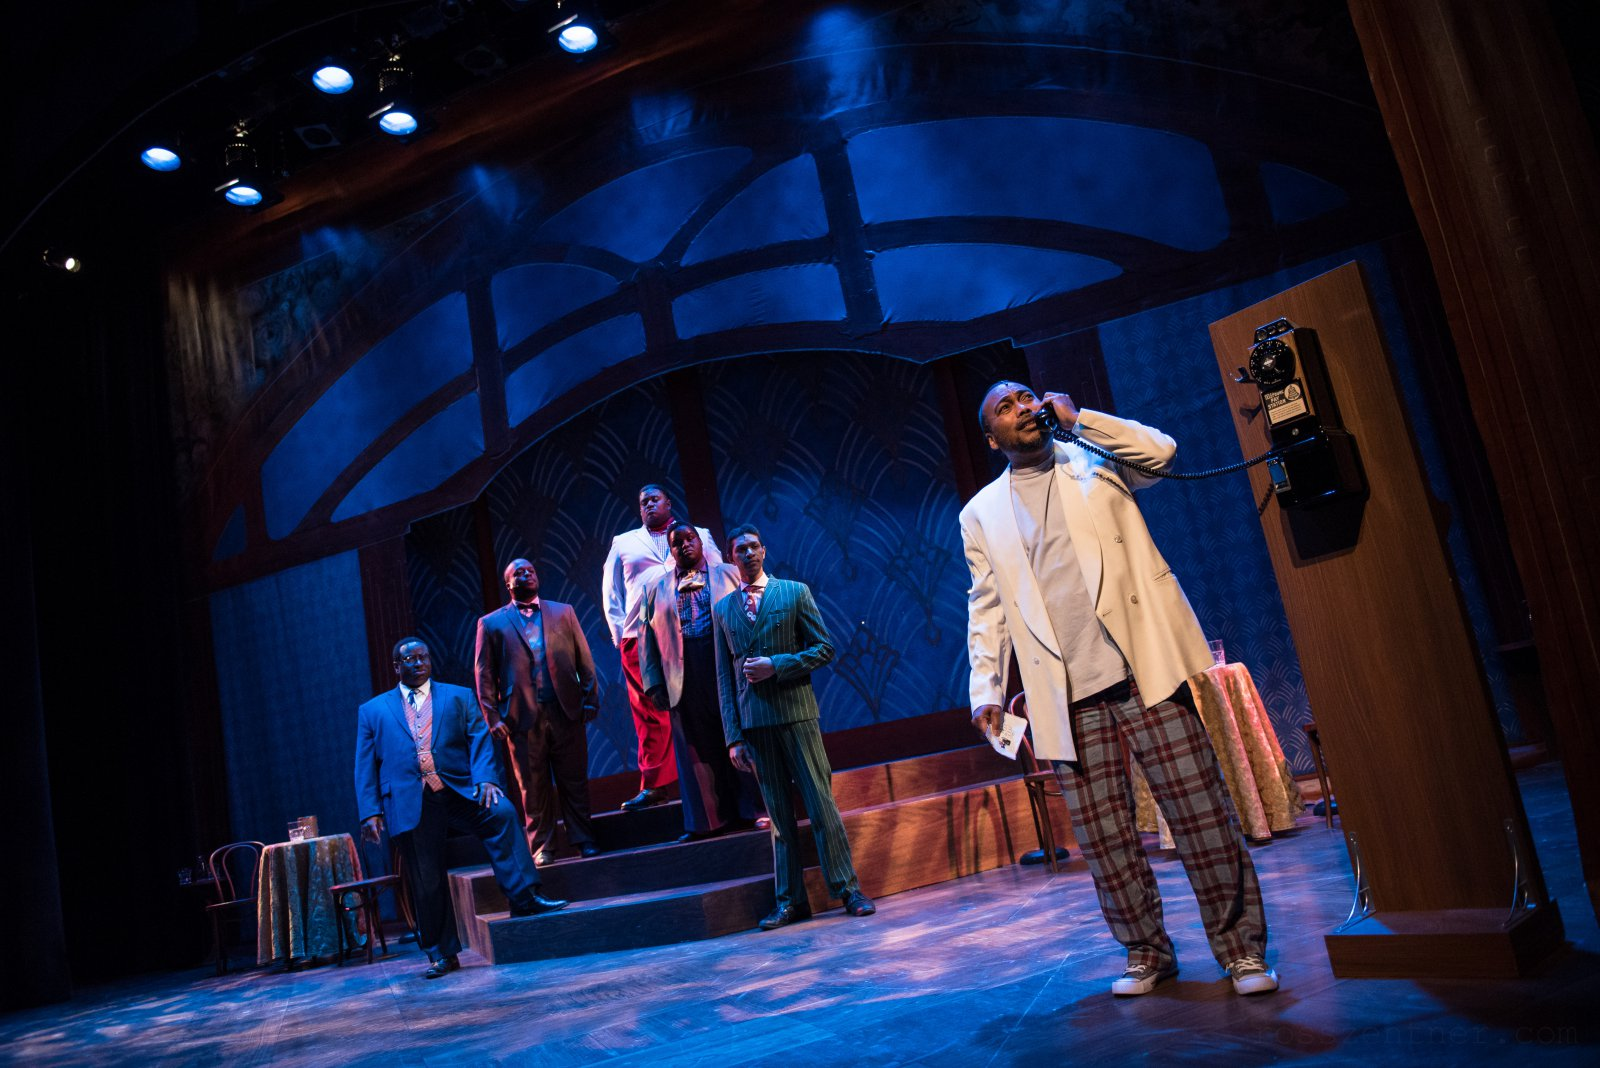 (l. to r.) James Carrington (Four-Eyed Moe), Shawn Holmes (No Moe), Lorenzo Rush Jr. (Big Moe), Kevin James Sievert (Little Moe), Sean Anthony Jackson (Eat Moe) and Gavin Lawrence (Nomax) in rehearsal for Skylight Music Theatre's production of Five Guys Named Moe January 25 – February 10.